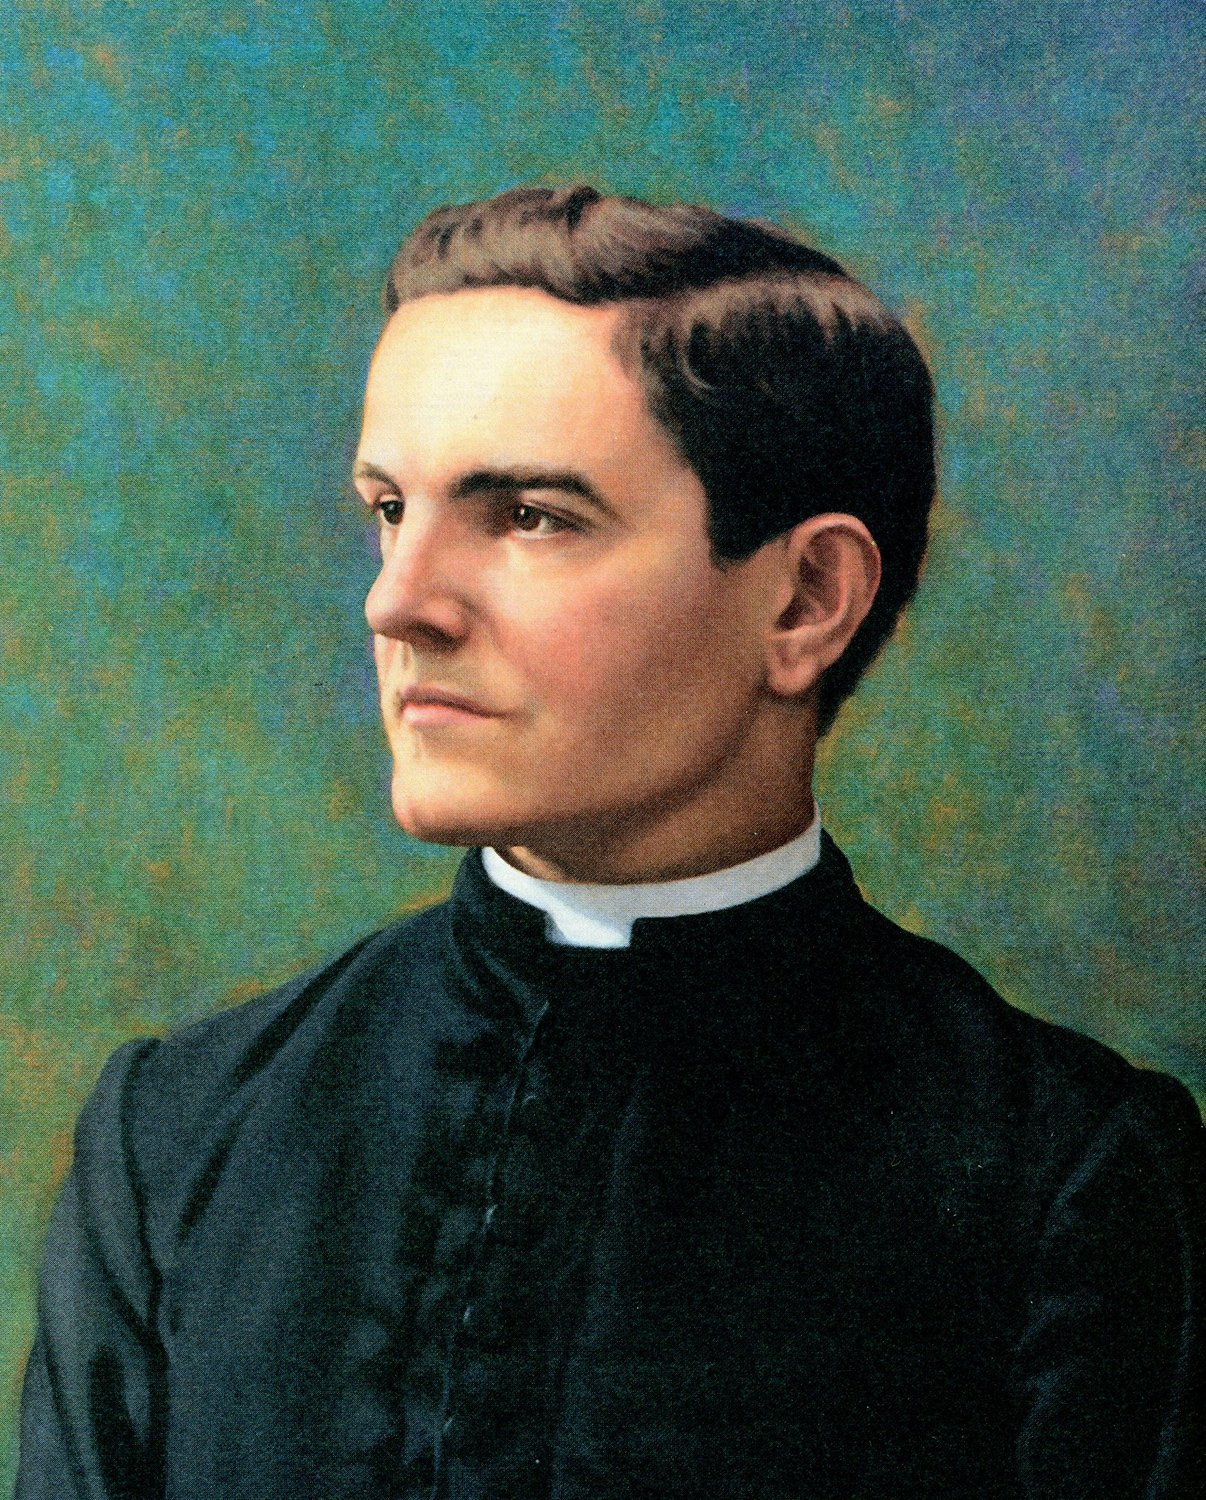 The beatification ceremony for Father Michael McGivney, founder of the Knights of Columbus, will be celebrated Oct. 31 in the Archdiocese of Hartford, Conn. Father McGivney is pictured in an undated portrait.